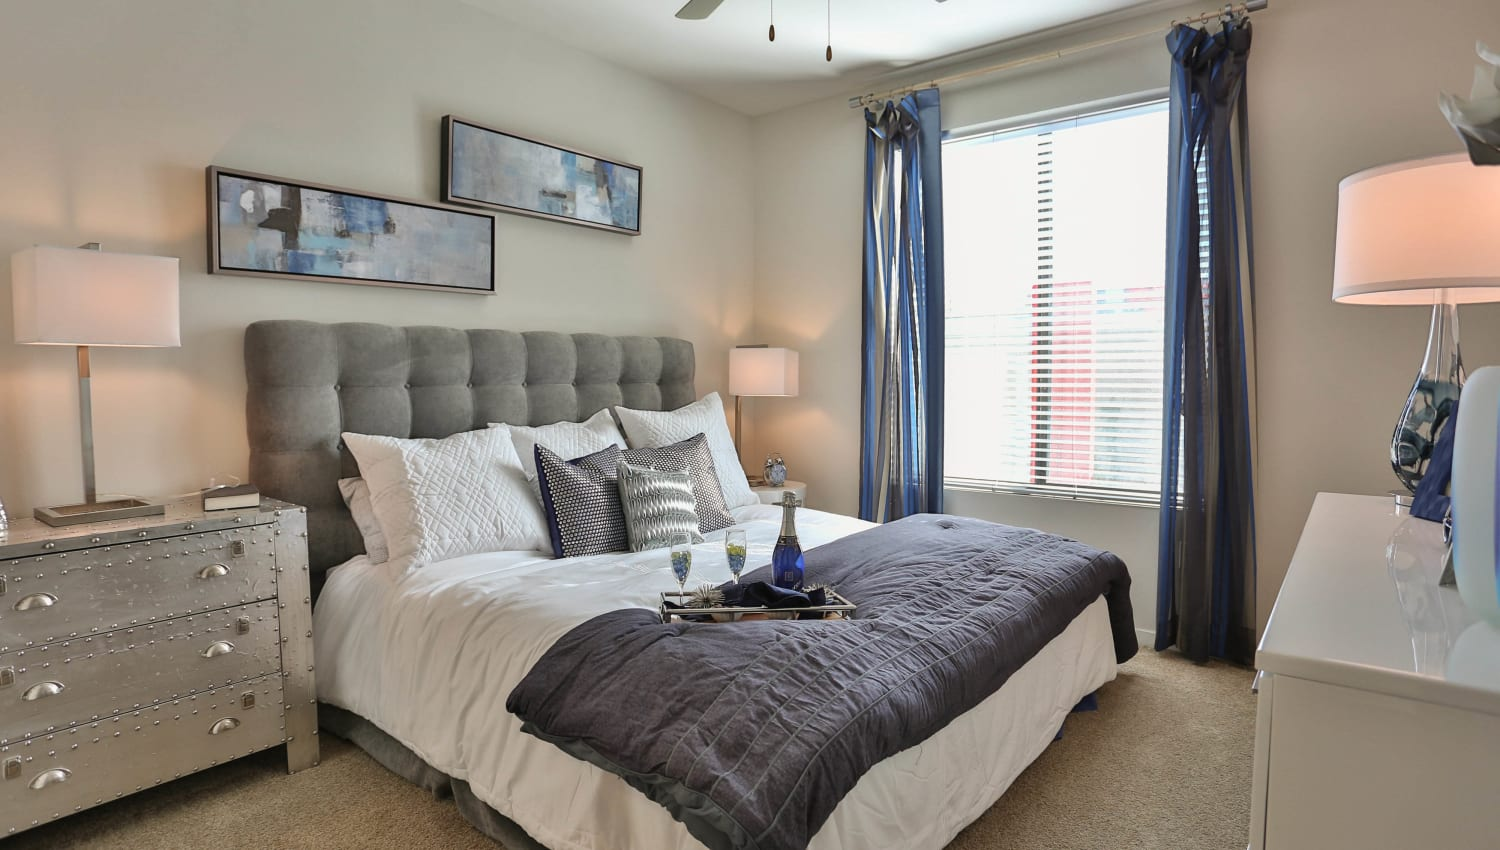 Draped windows and plush carpeting in a model home's master bedroom at Olympus Steelyard in Chandler, Arizona